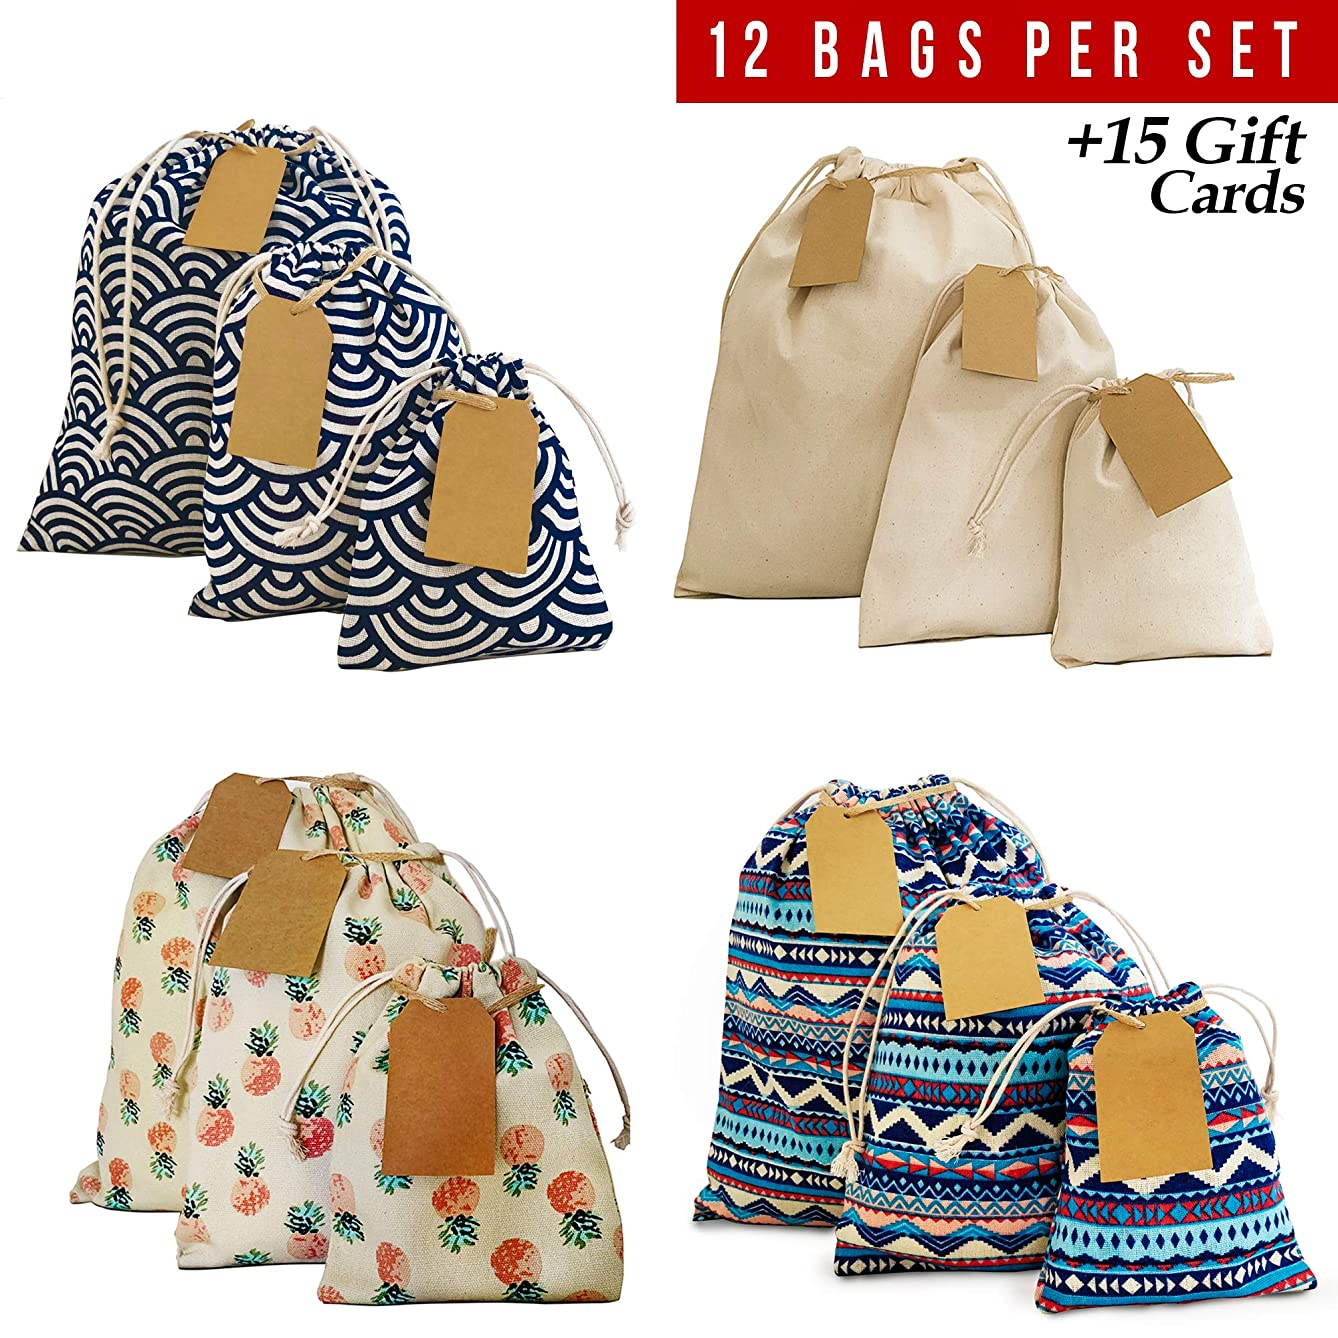 Drawstring bag 12pcs + 15 removable tags, reusable produce bags, eco friendly storage bags, snack cloth bags, reusable grocery bags, canvas bag for Birthday Wedding Party Baby Shower. 2nd Ed.